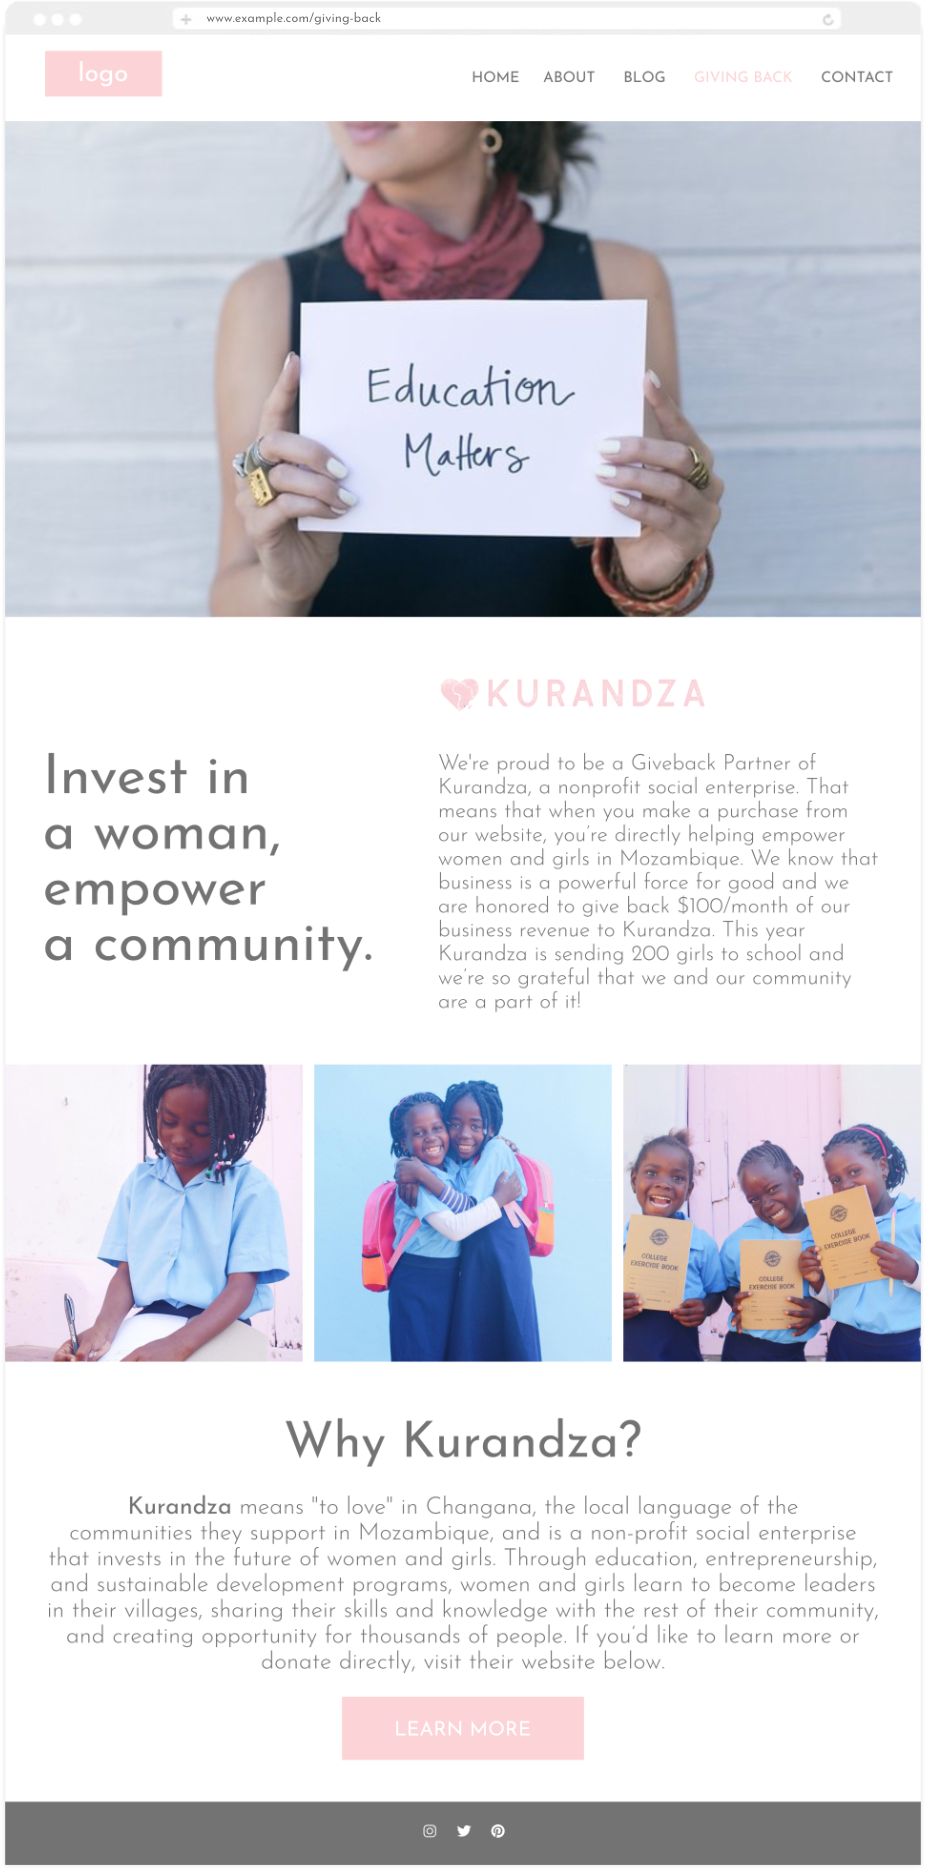 kurandza giving back page.png